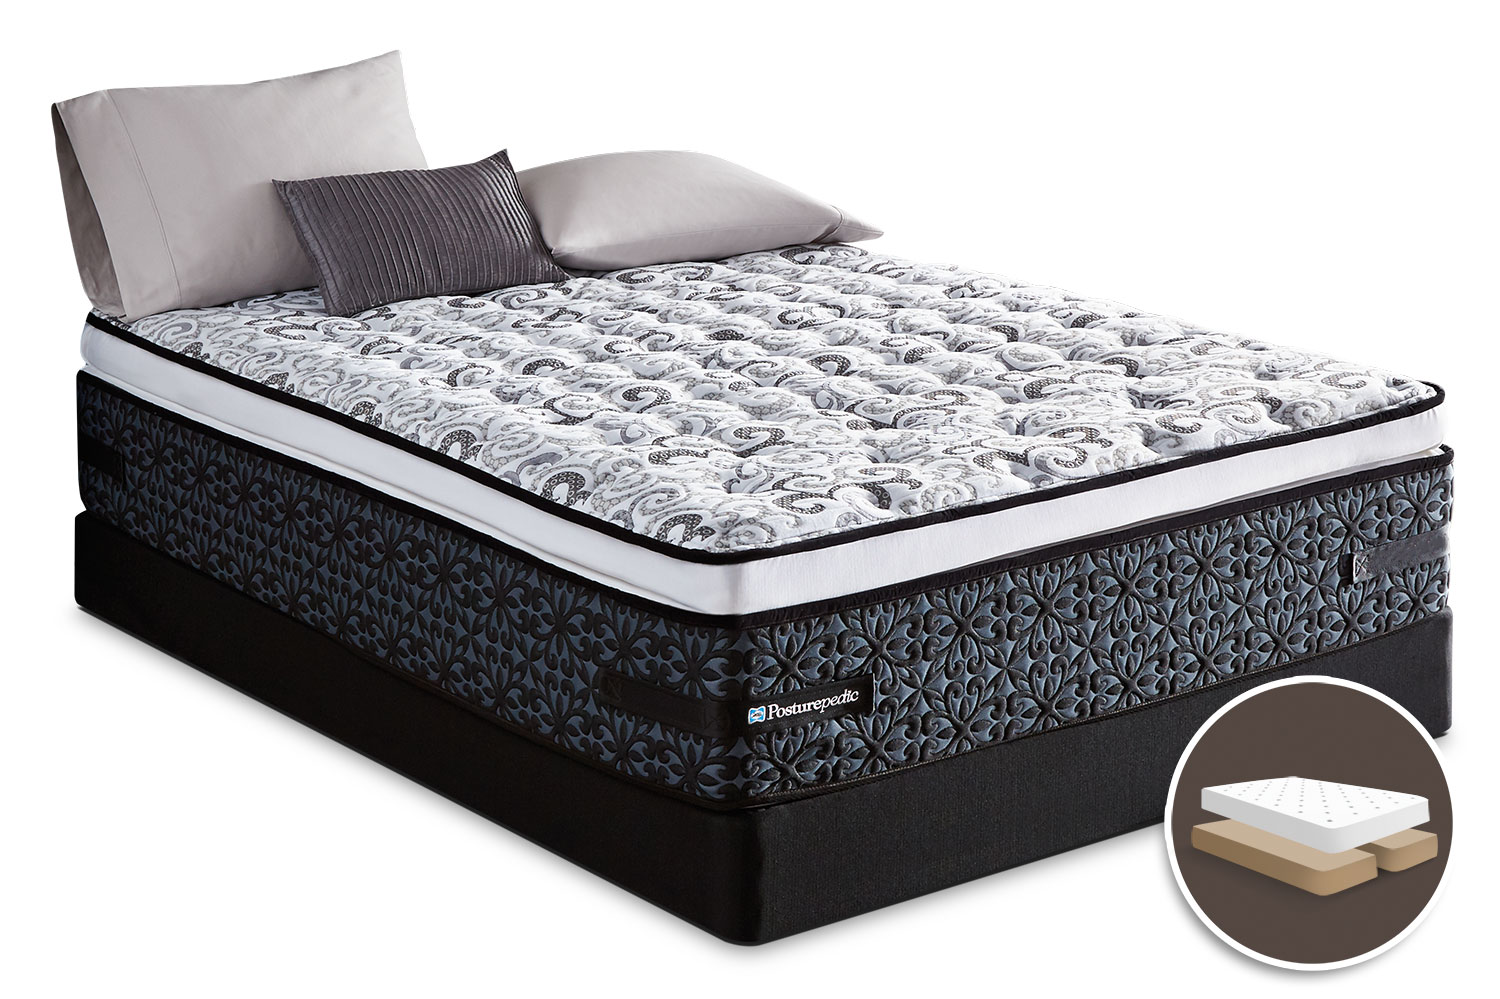 Sealy Crown Jewel Luxe Summer Crest Euro Pillow-Top Split Queen Mattress Set